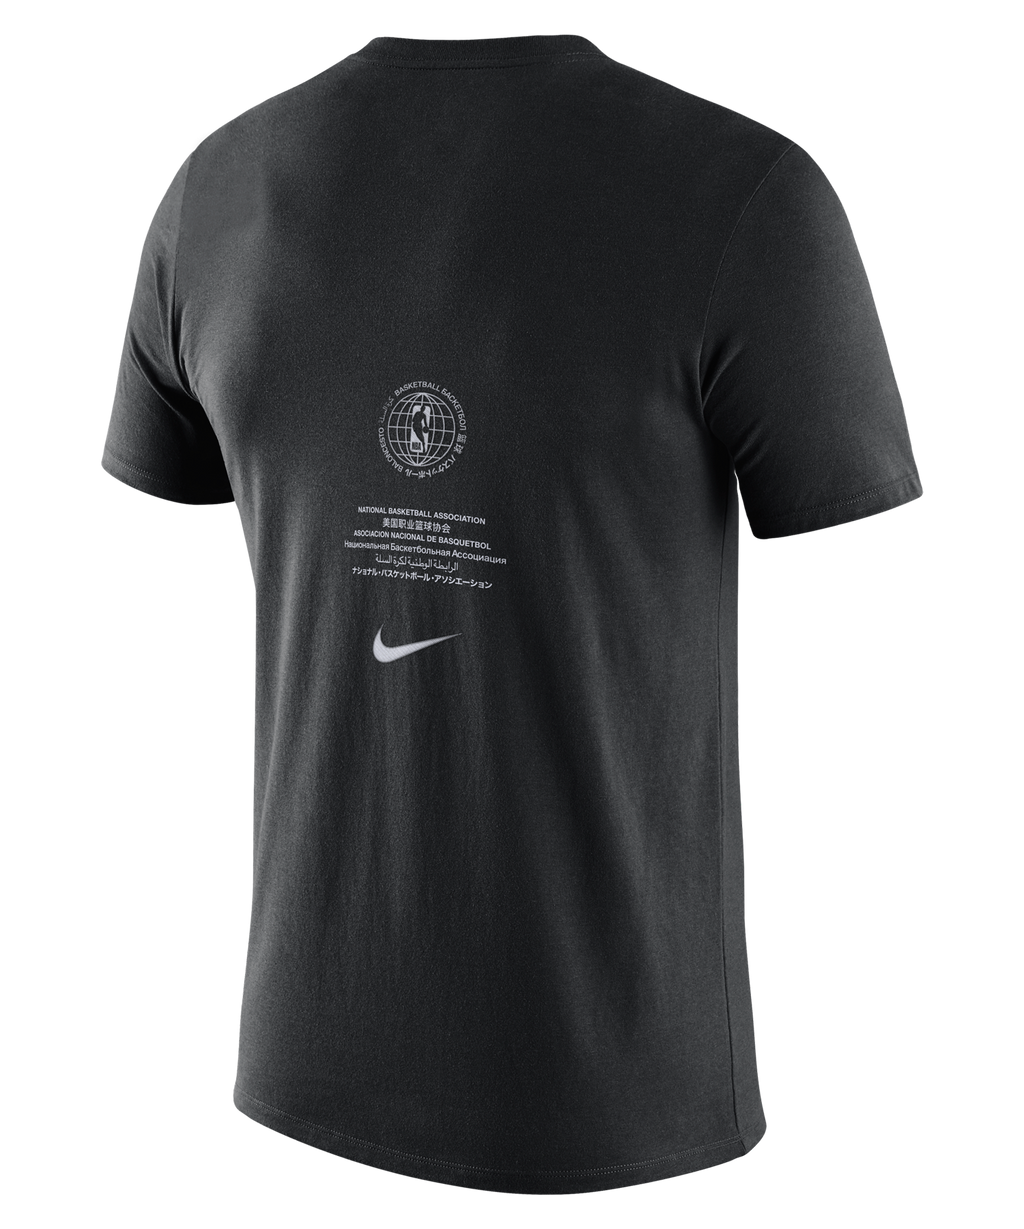 Philadelphia 76ers Courtside Logo Nike NBA T-Shirt